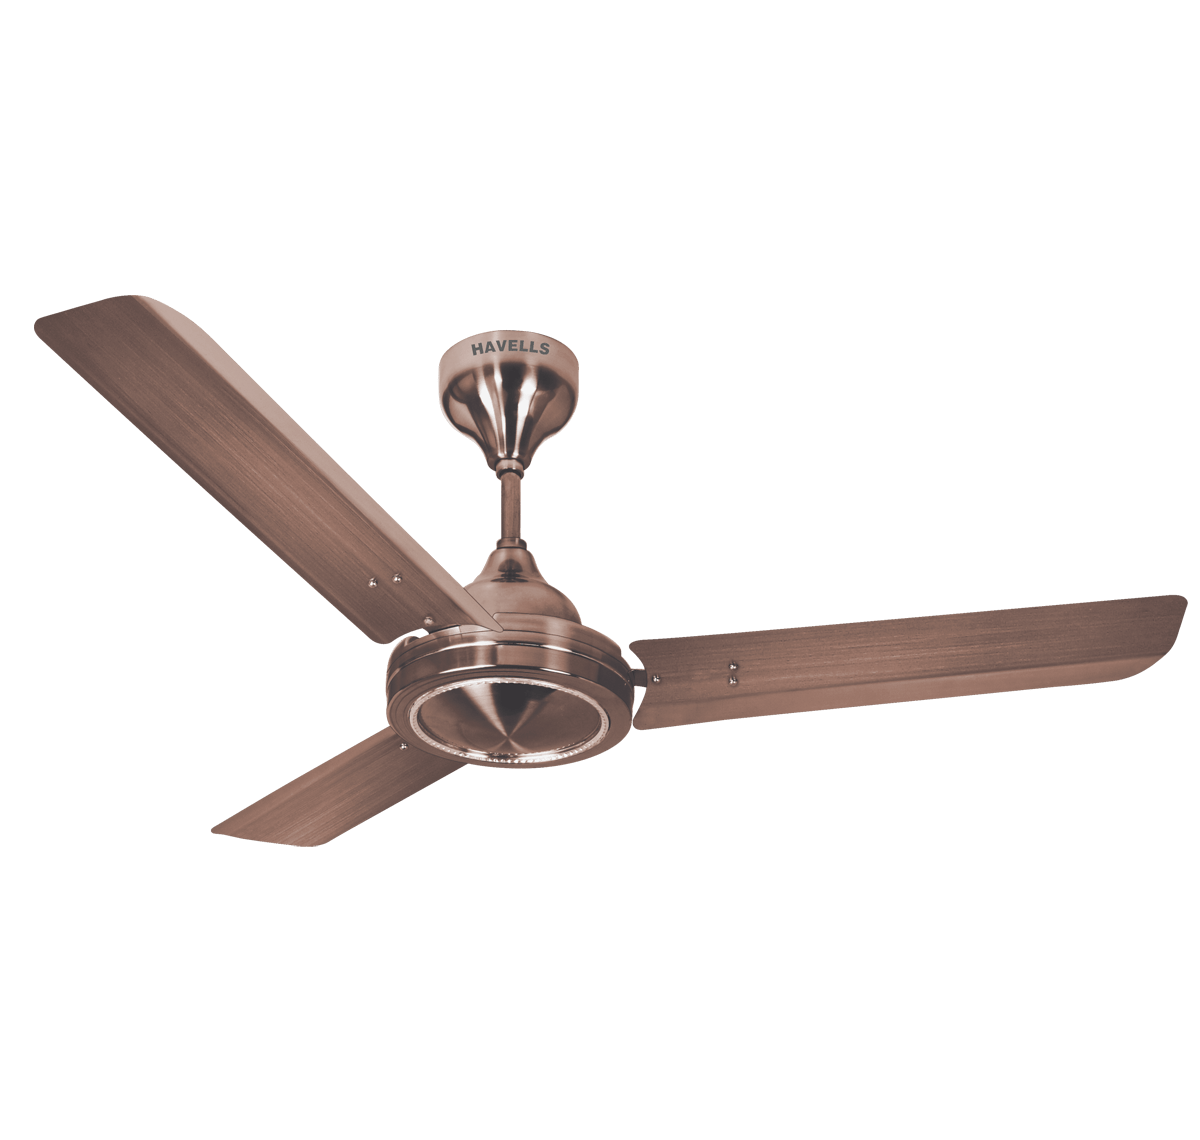 Antique Copper Ceiling Fan Havells Octet Special Finish Ceiling Fans Online Havells